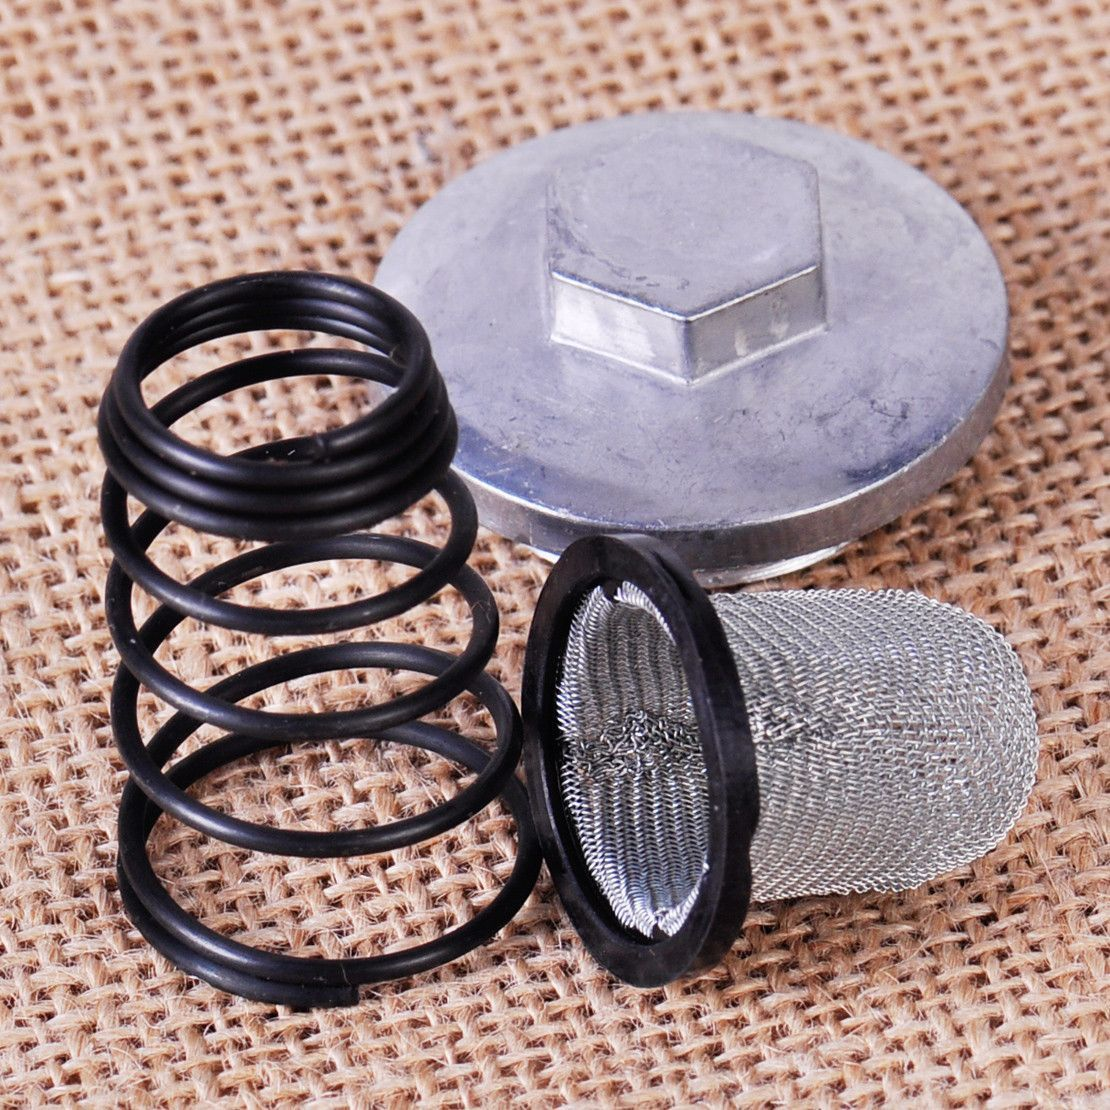 Oil Filter Drain Plug Set Kit fit for GY6 50cc 125cc 150cc